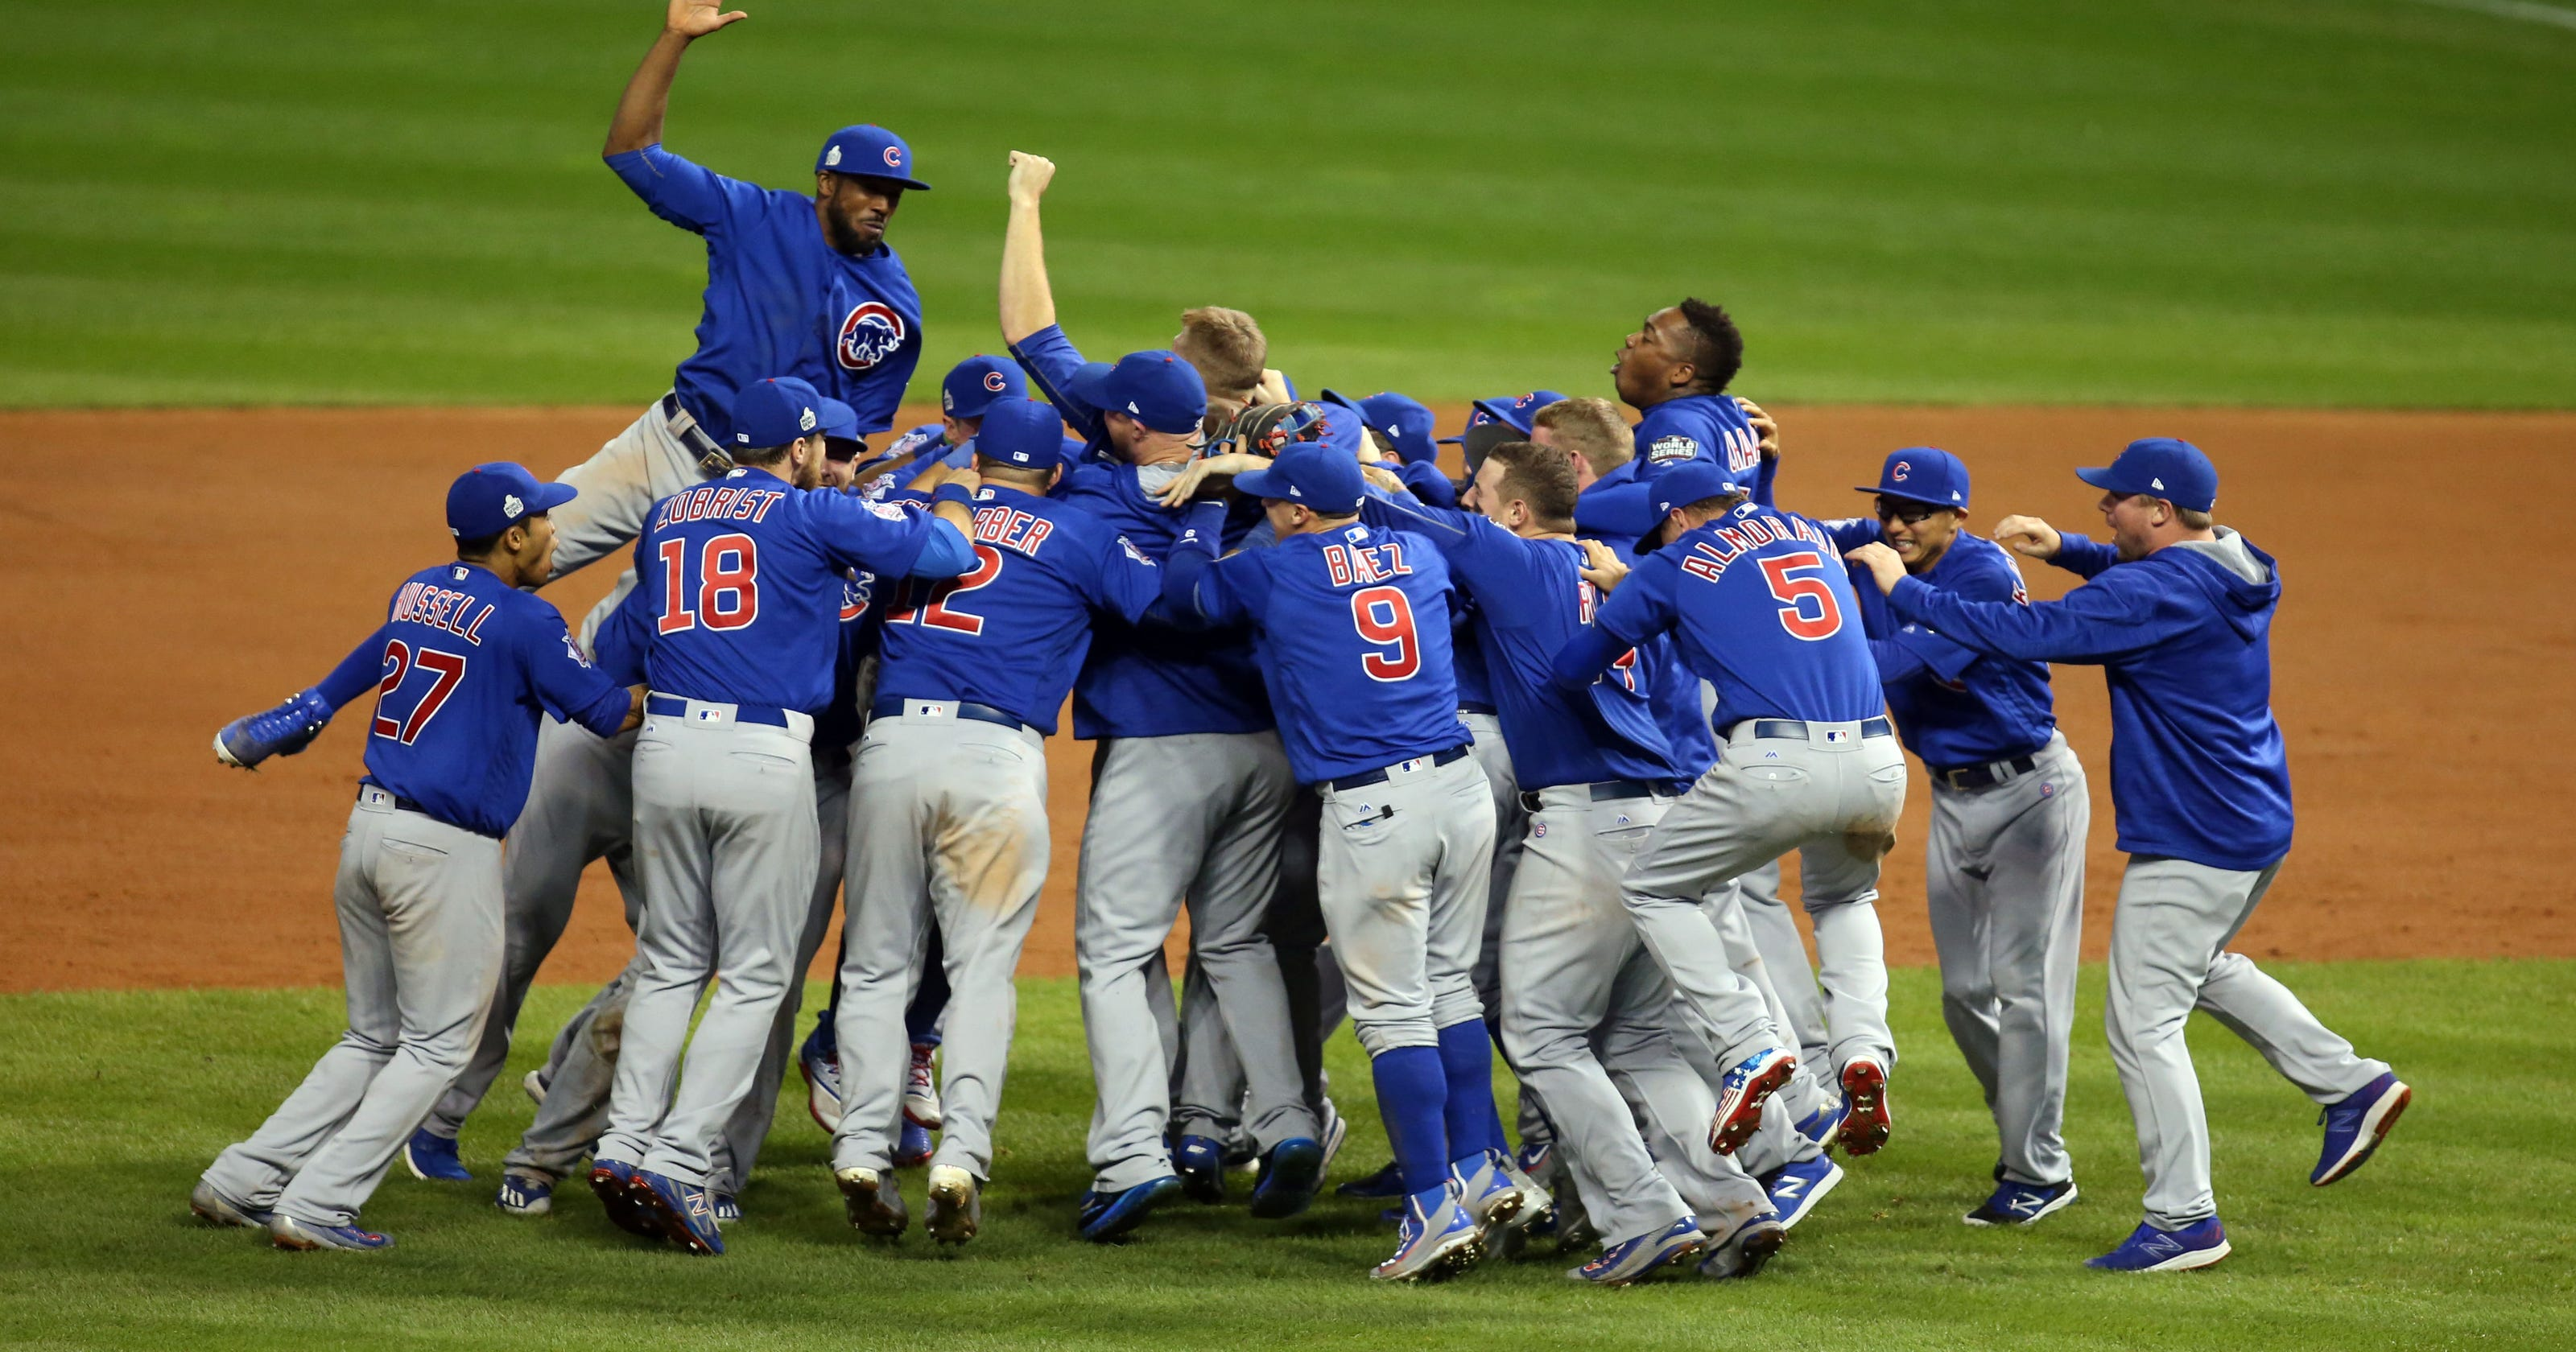 55deecde10c Cubs win thrilling Game 7 in 10 innings for first World Series title since  1908